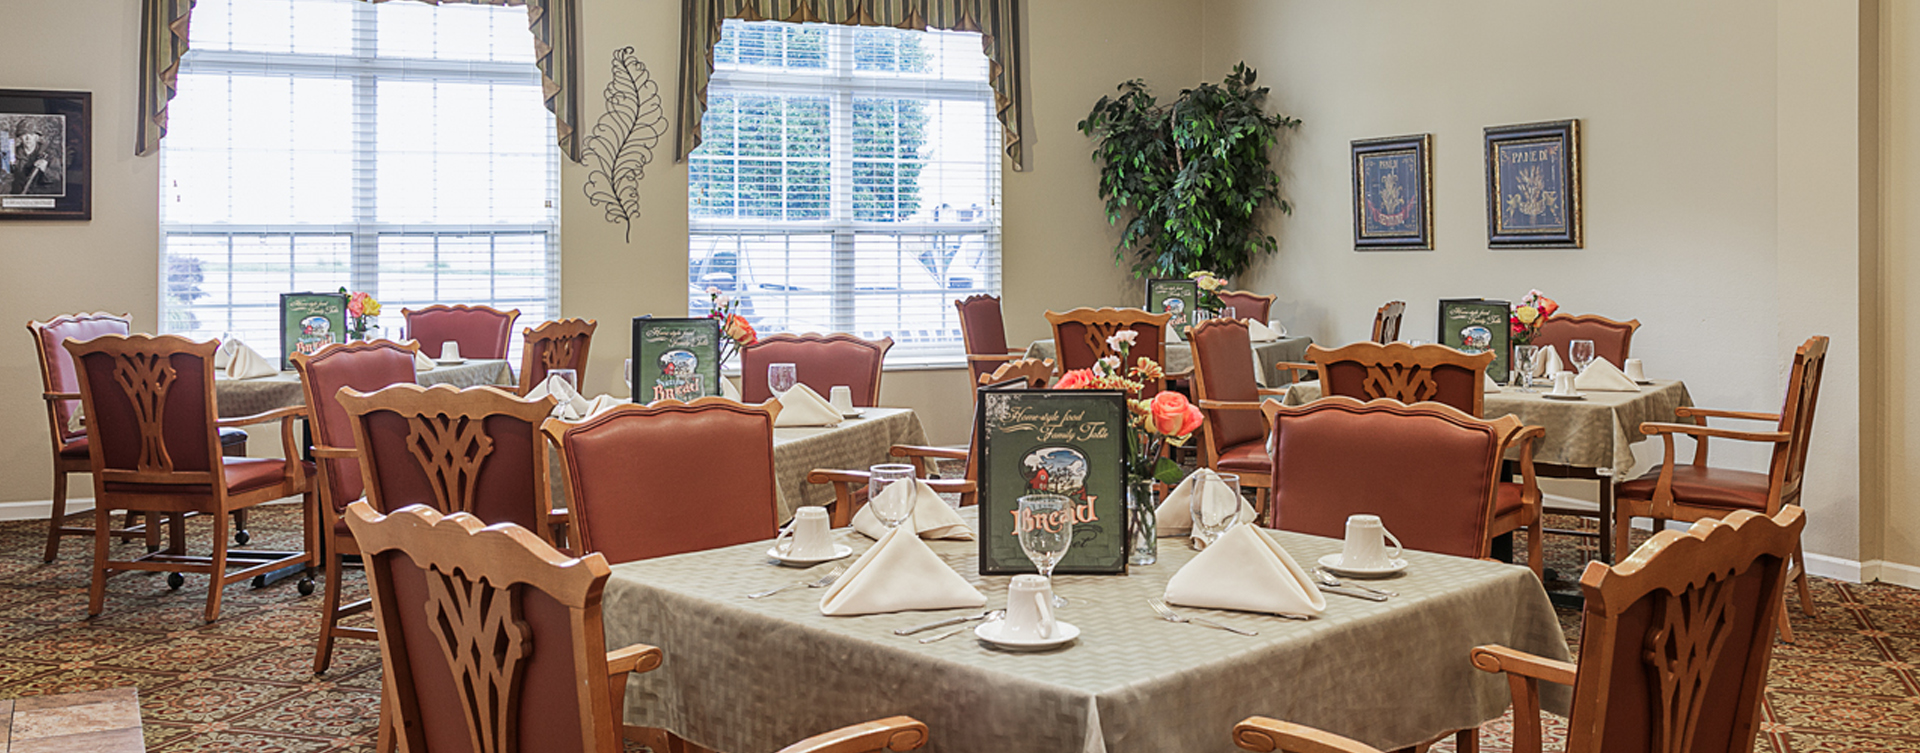 Enjoy homestyle food with made-from-scratch recipes in our dining room at Bickford of Omaha - Hickory